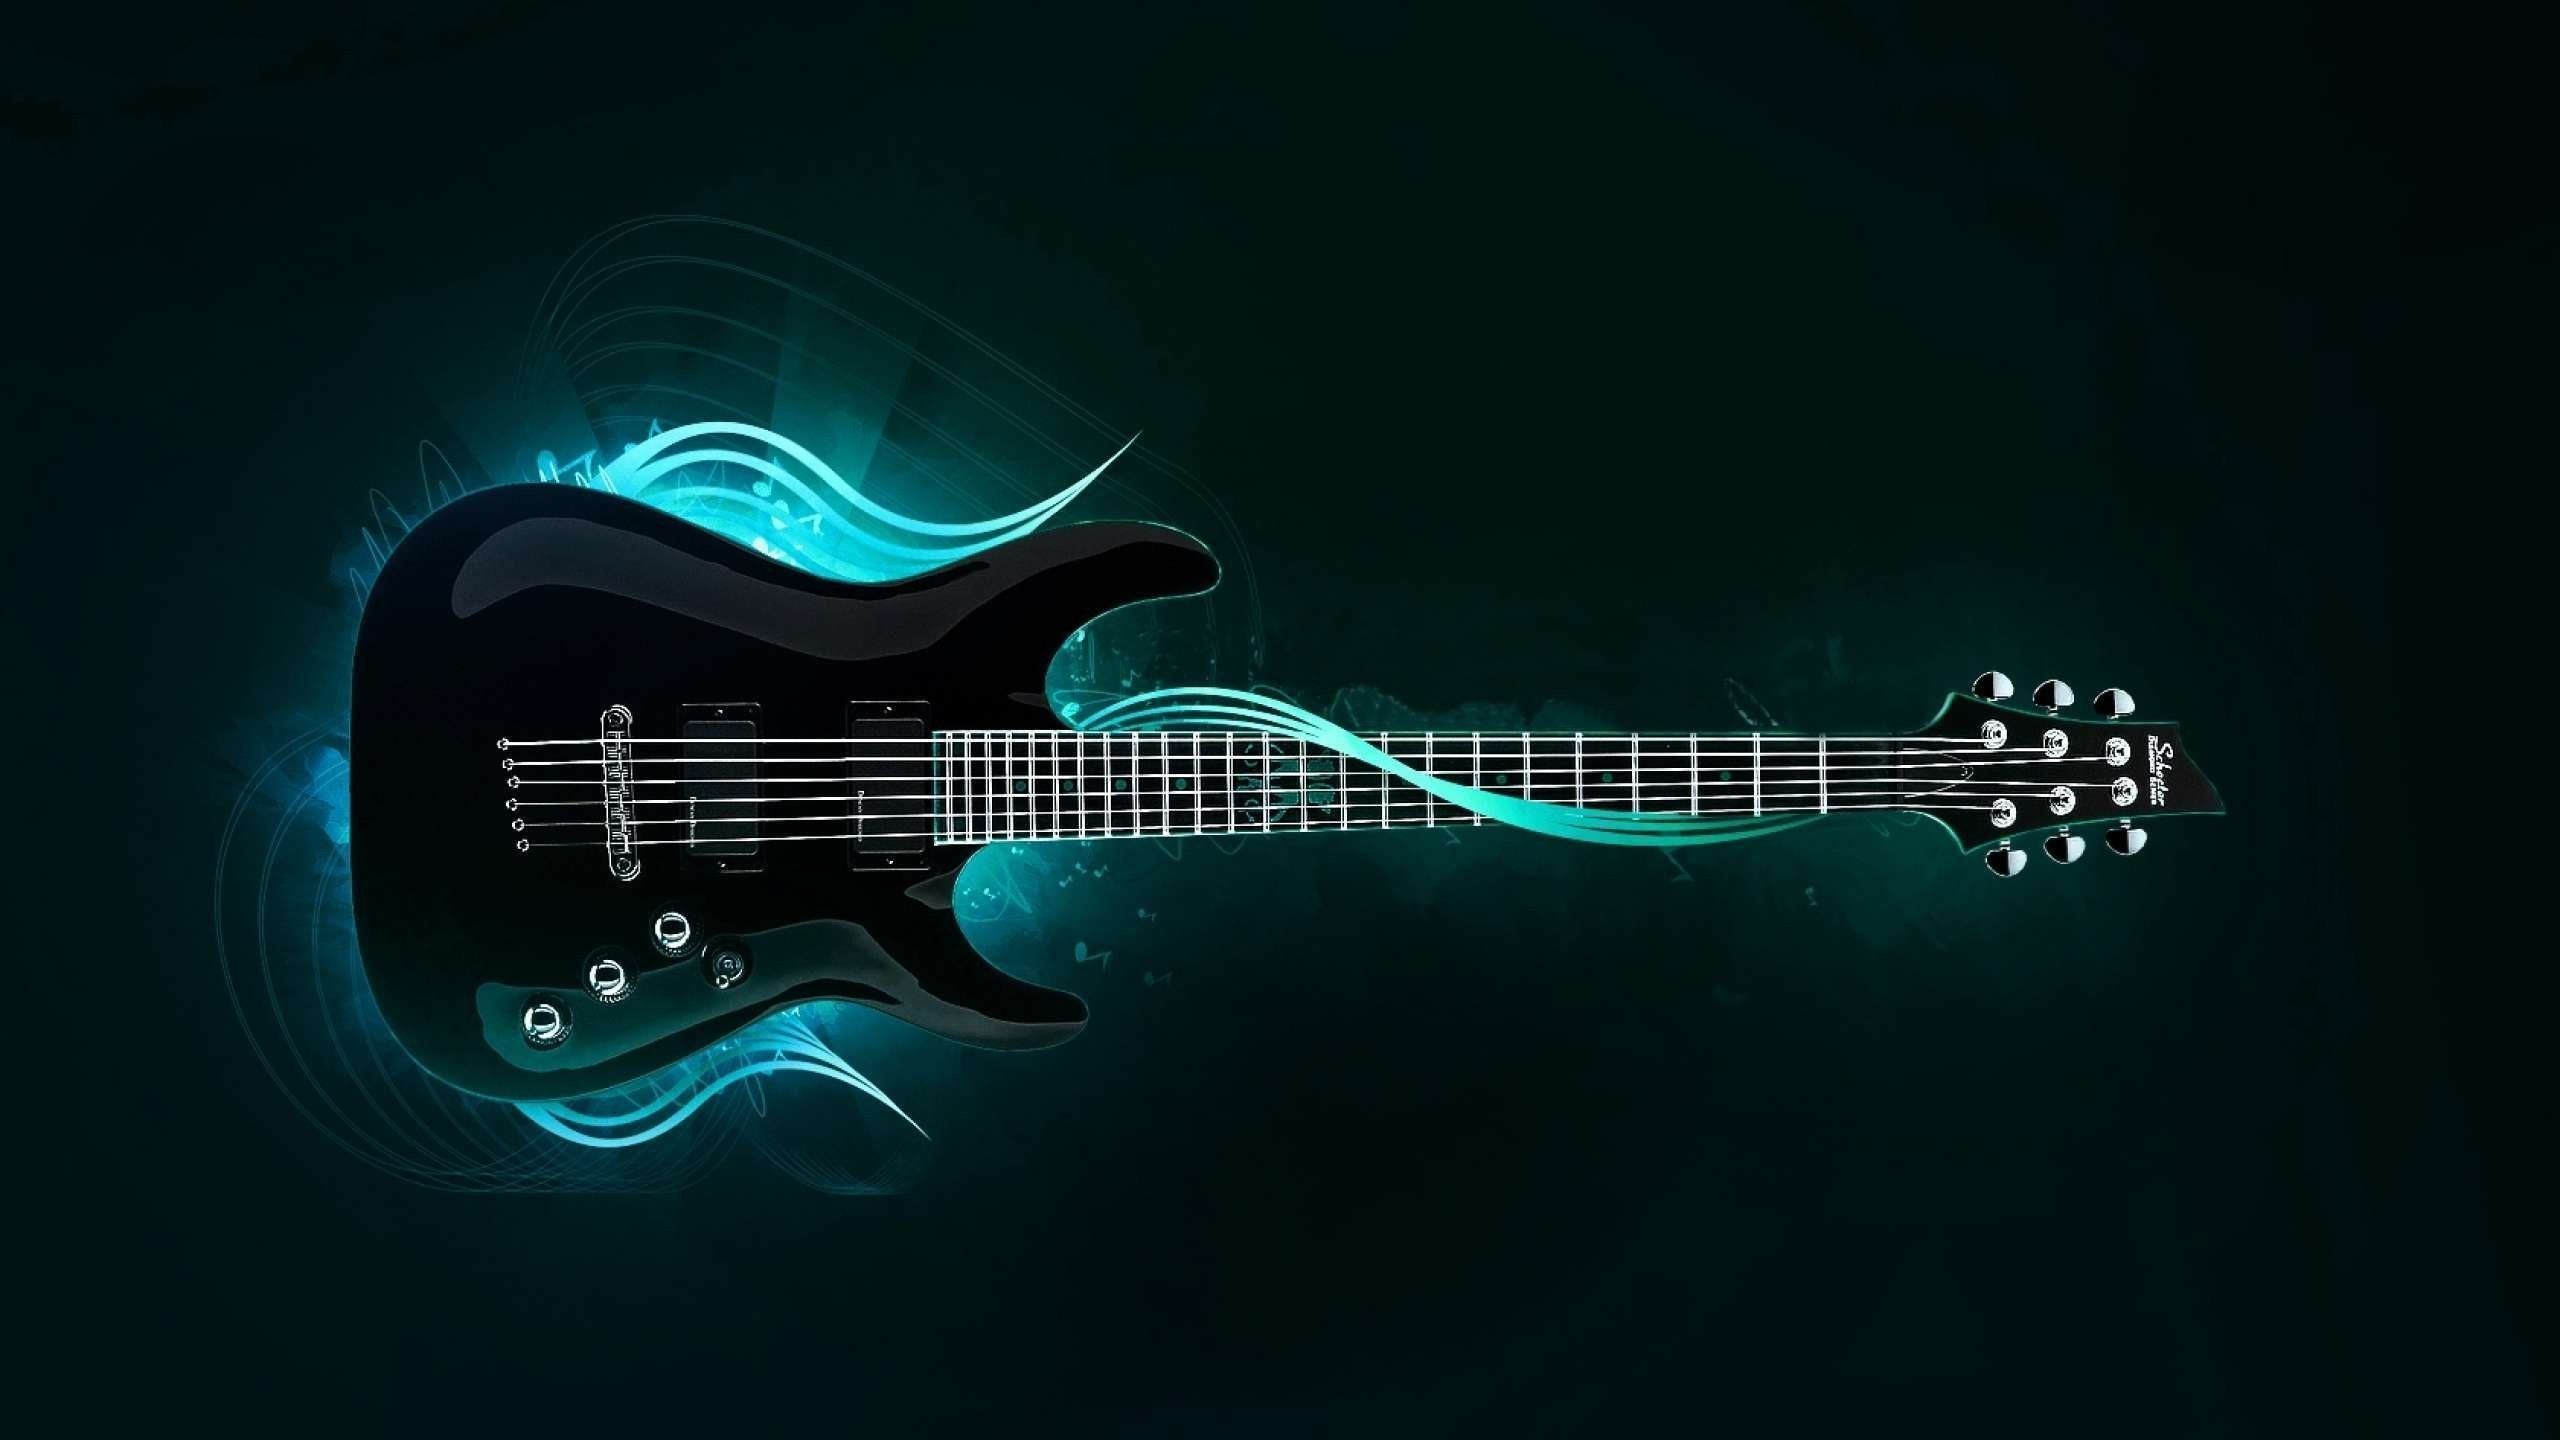 Rock Music Wallpapers Top Free Rock Music Backgrounds Wallpaperaccess